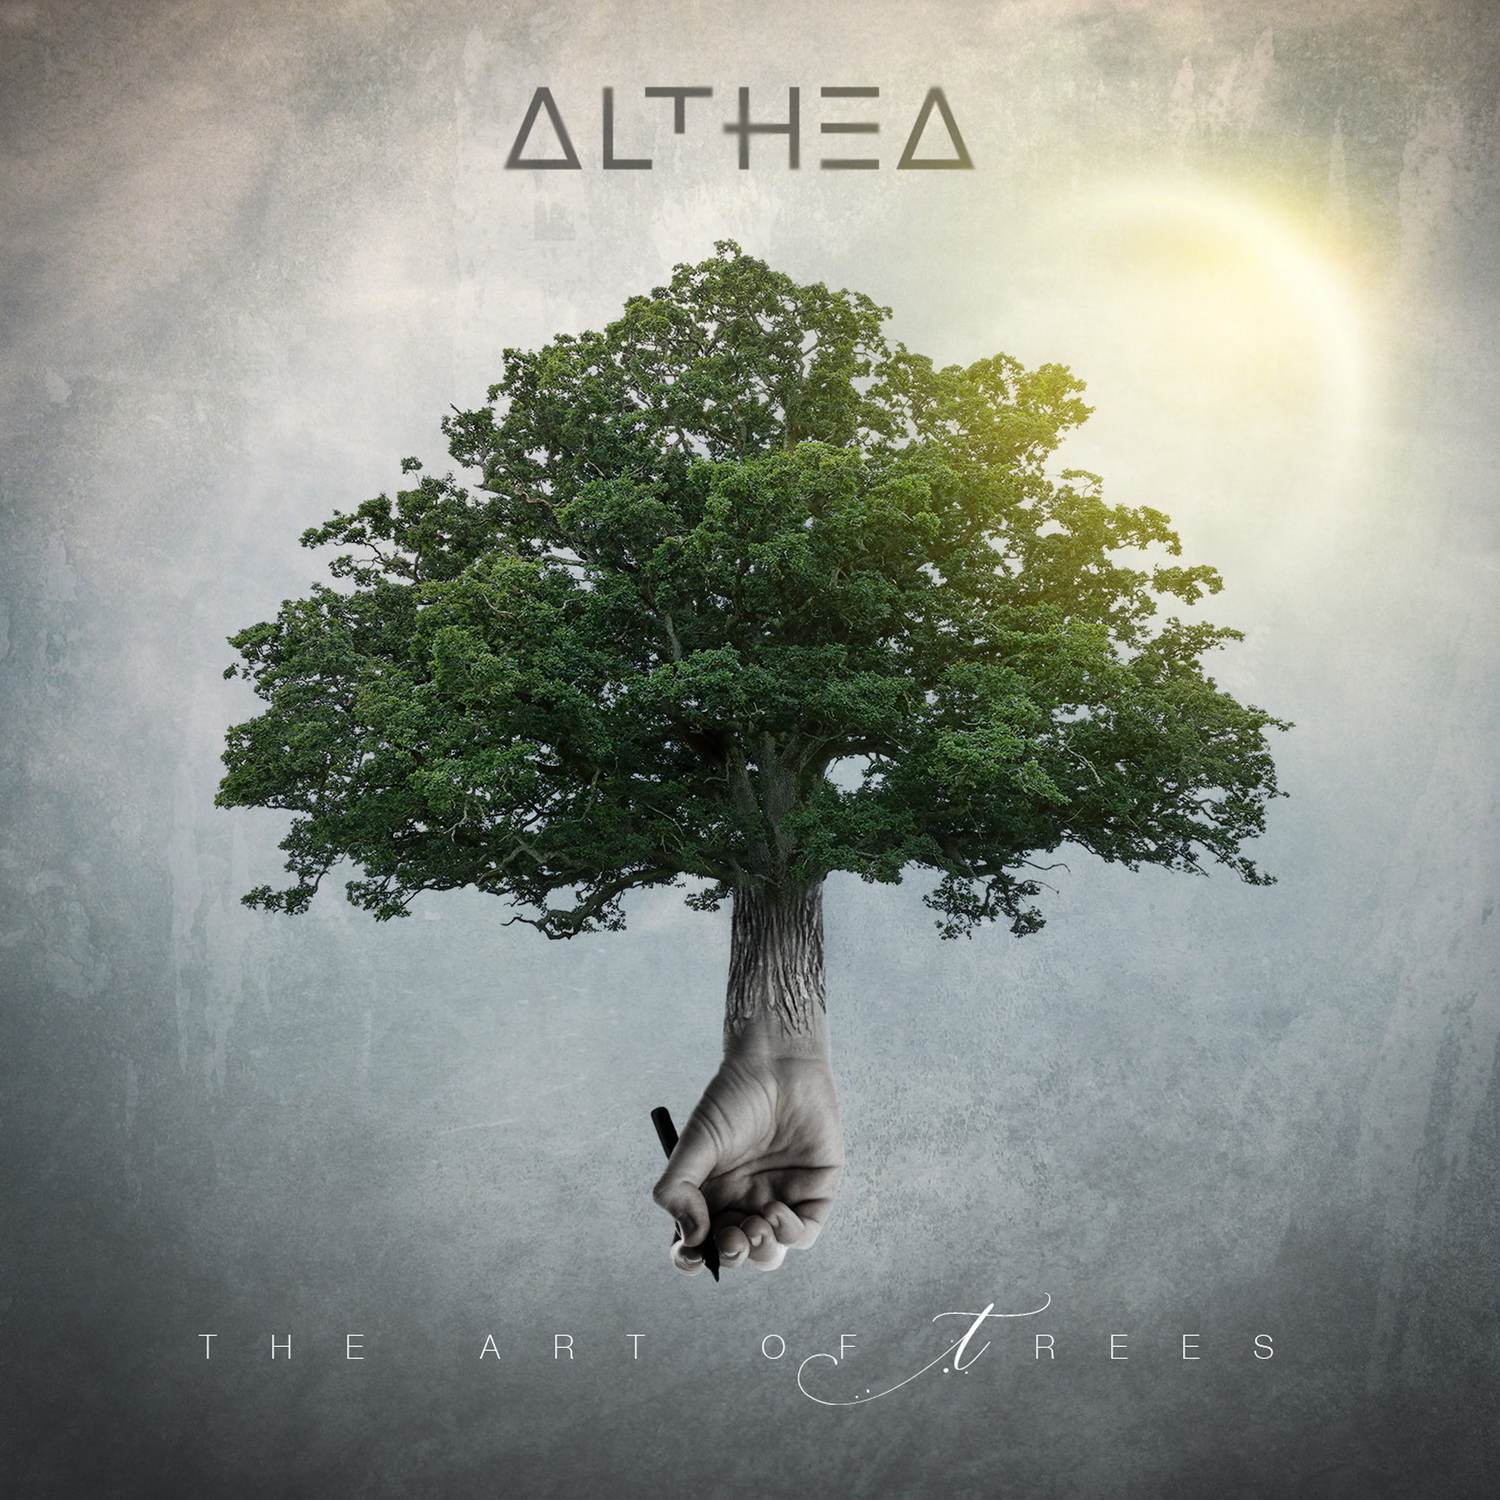 althea-the-art-of-trees-feiner-prog-fuers-herz